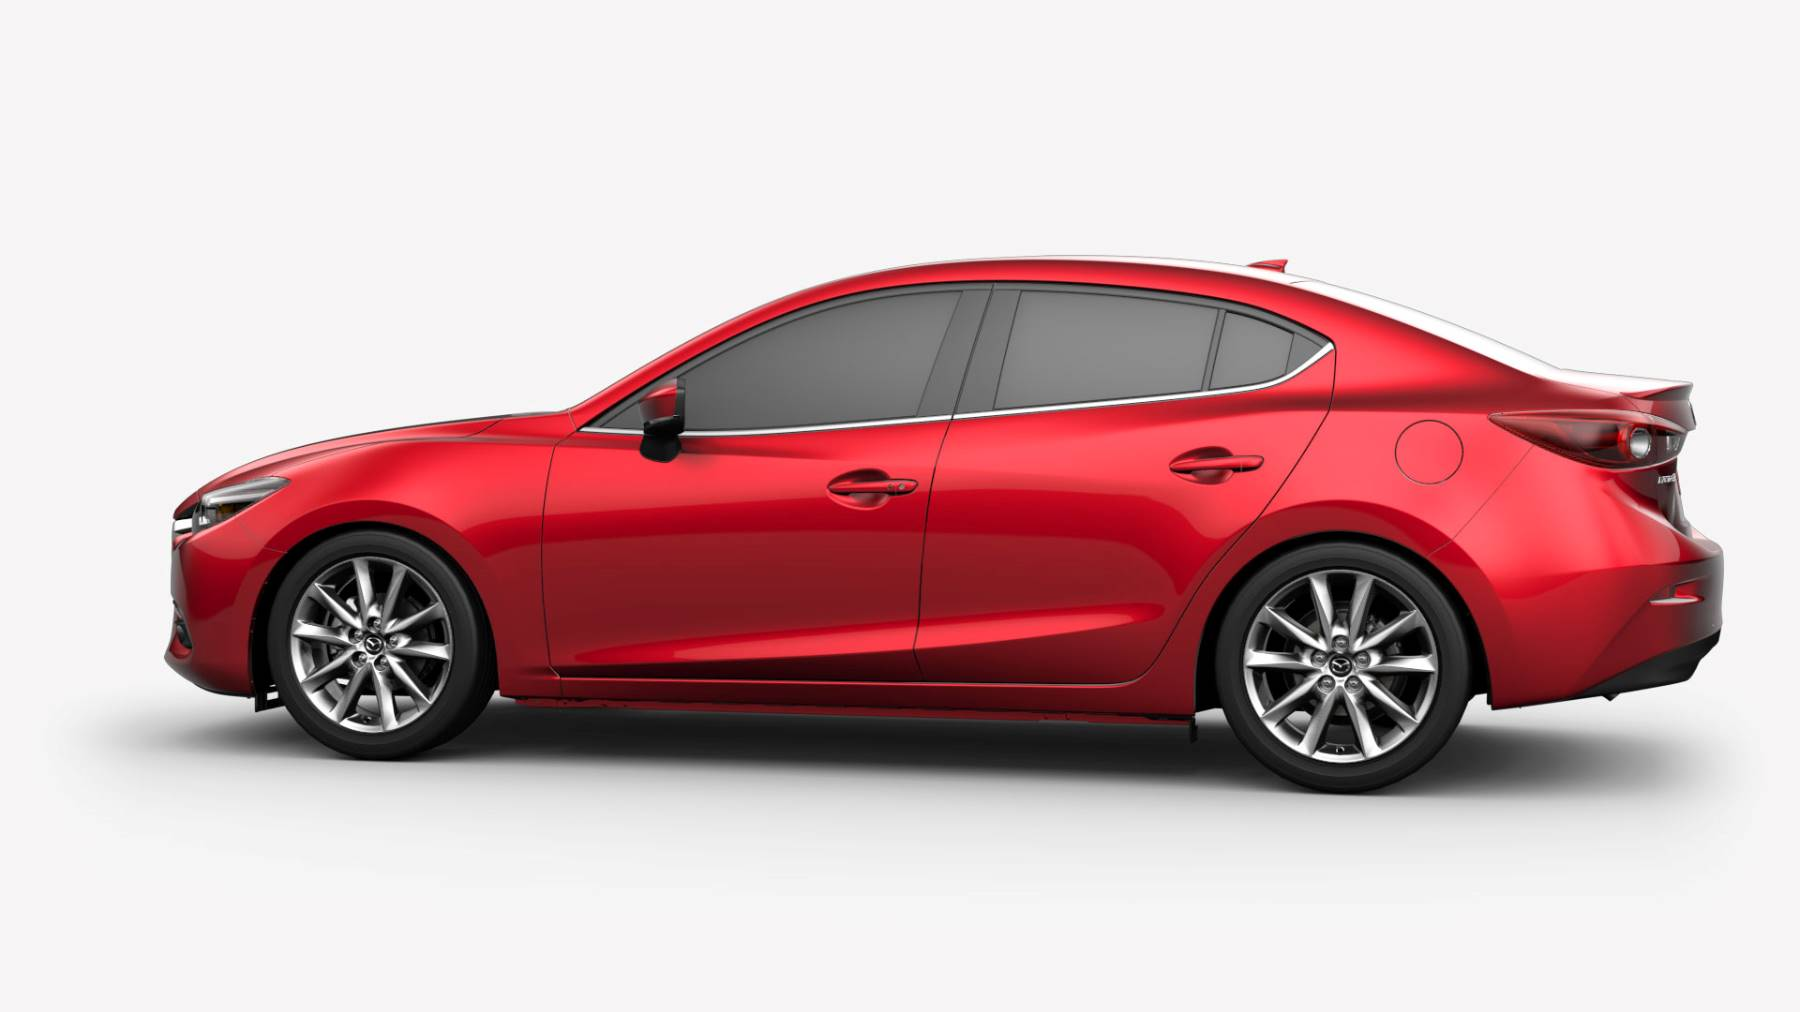 https://www.mazdausa.com/siteassets/vehicles/2018/m3s/vlp/studio-360s/soul-red/my18_m3s_gt_41v_soul_red-005.jpg?w=1480